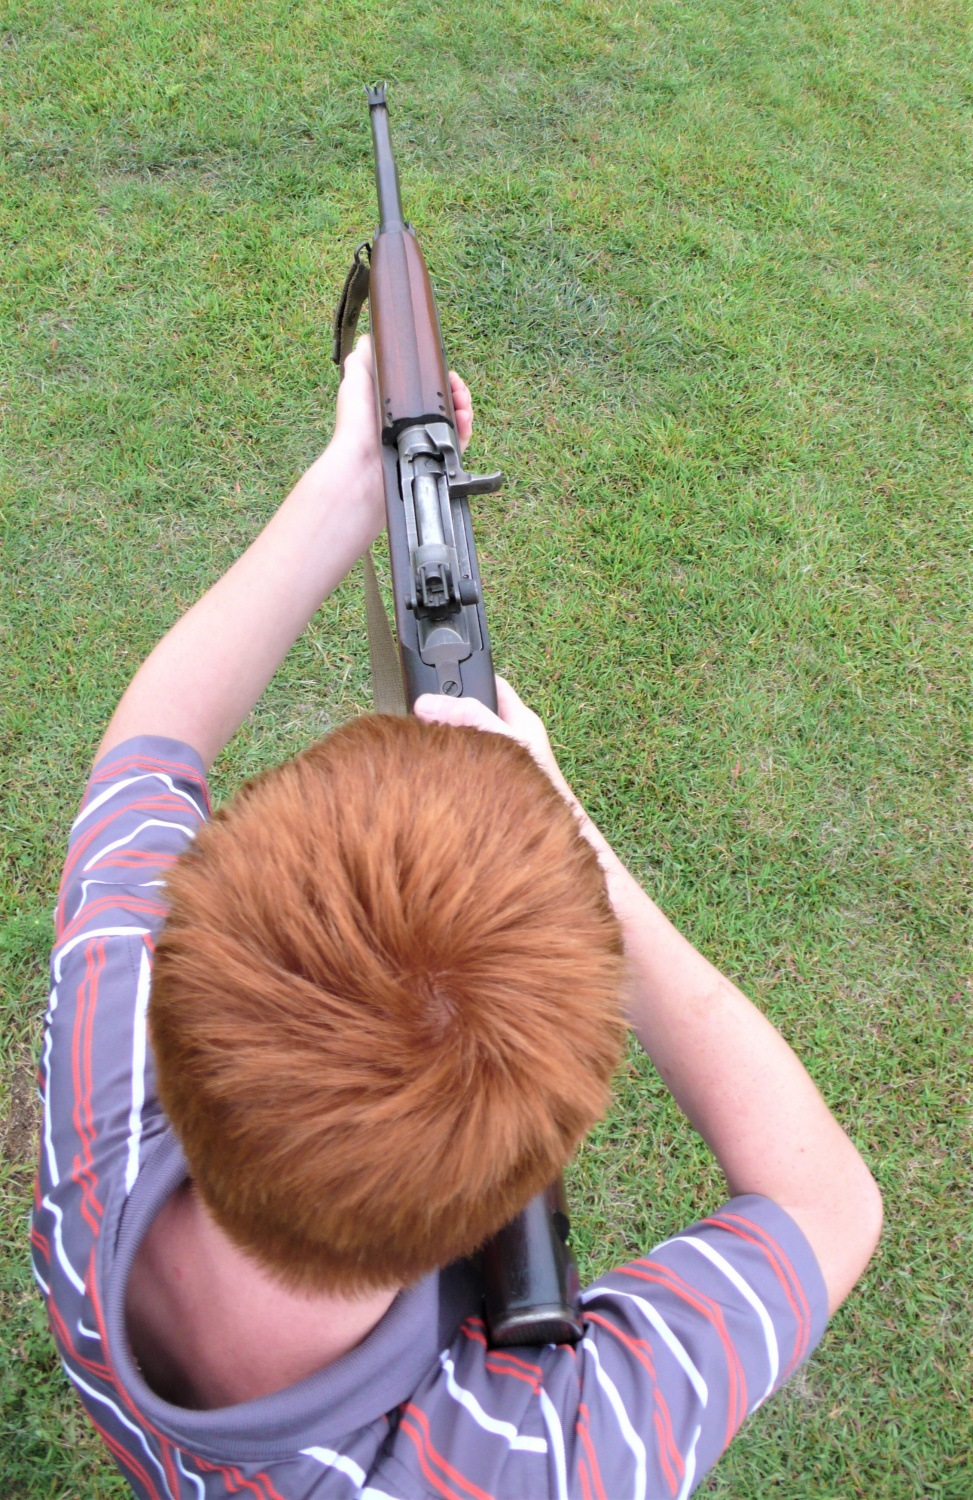 M1 Carbine Good For Youth